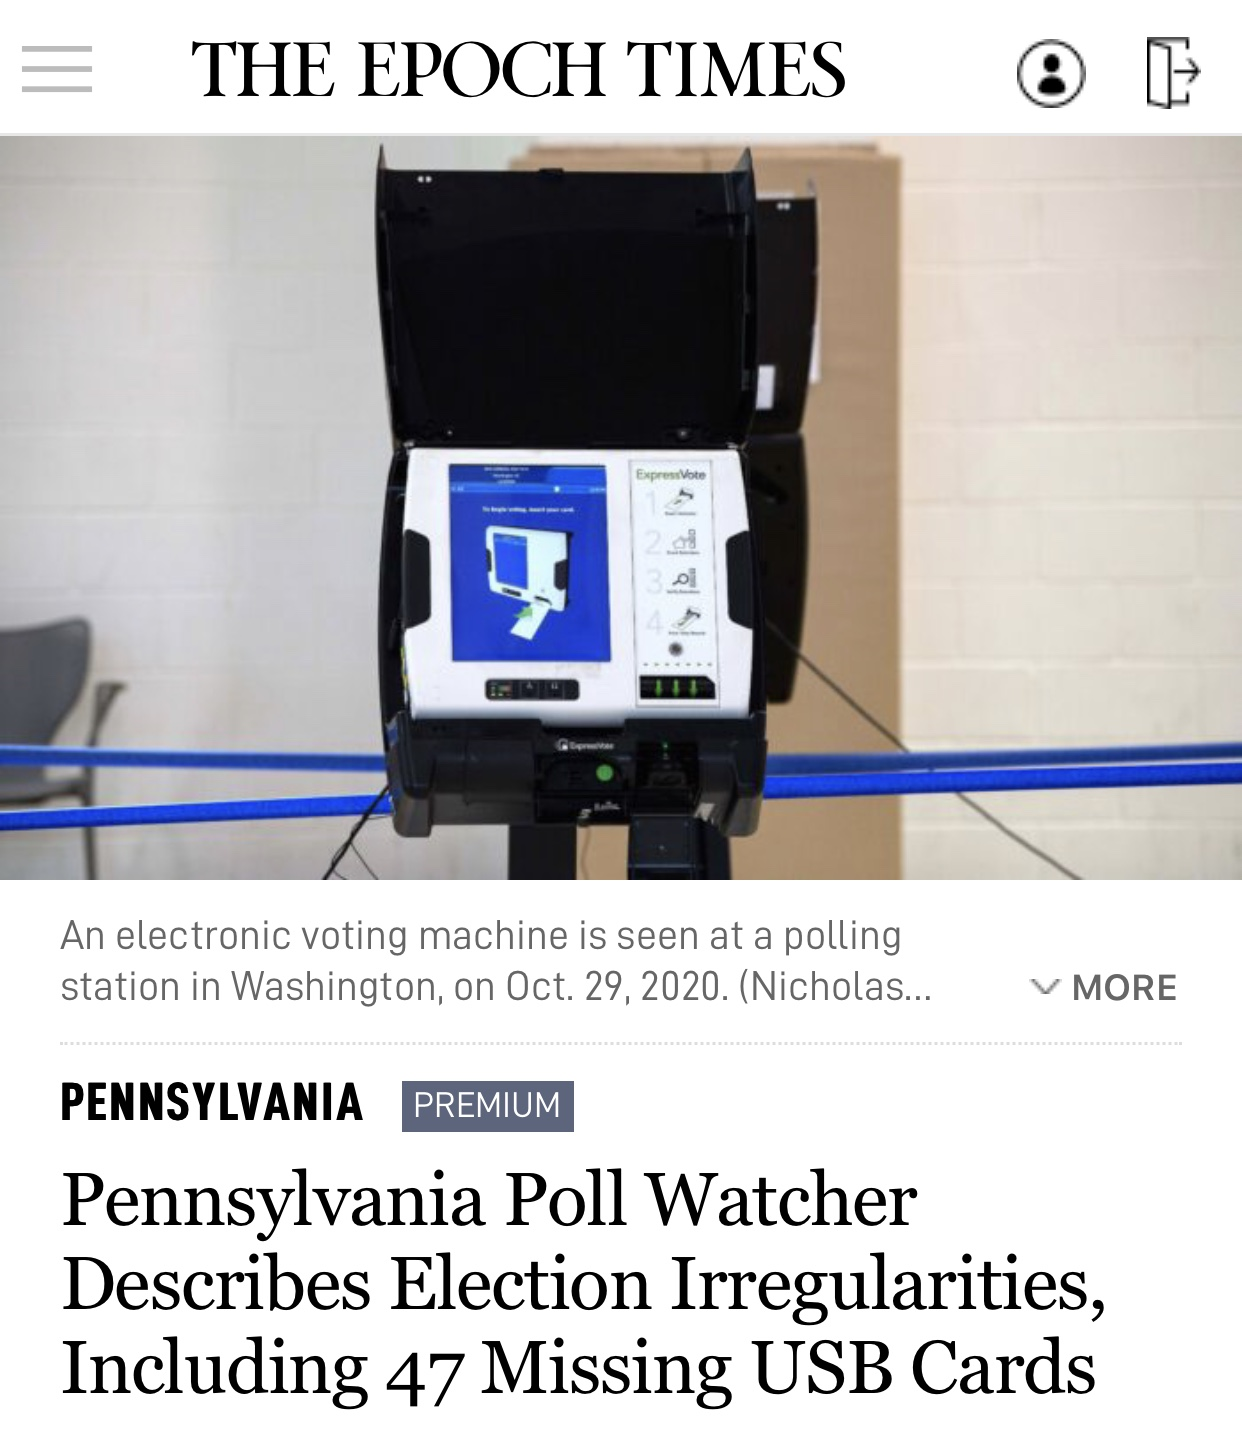 Pennsylvania Poll Watcher Describes Election Irregularities, Including 47 Missing USB Cards